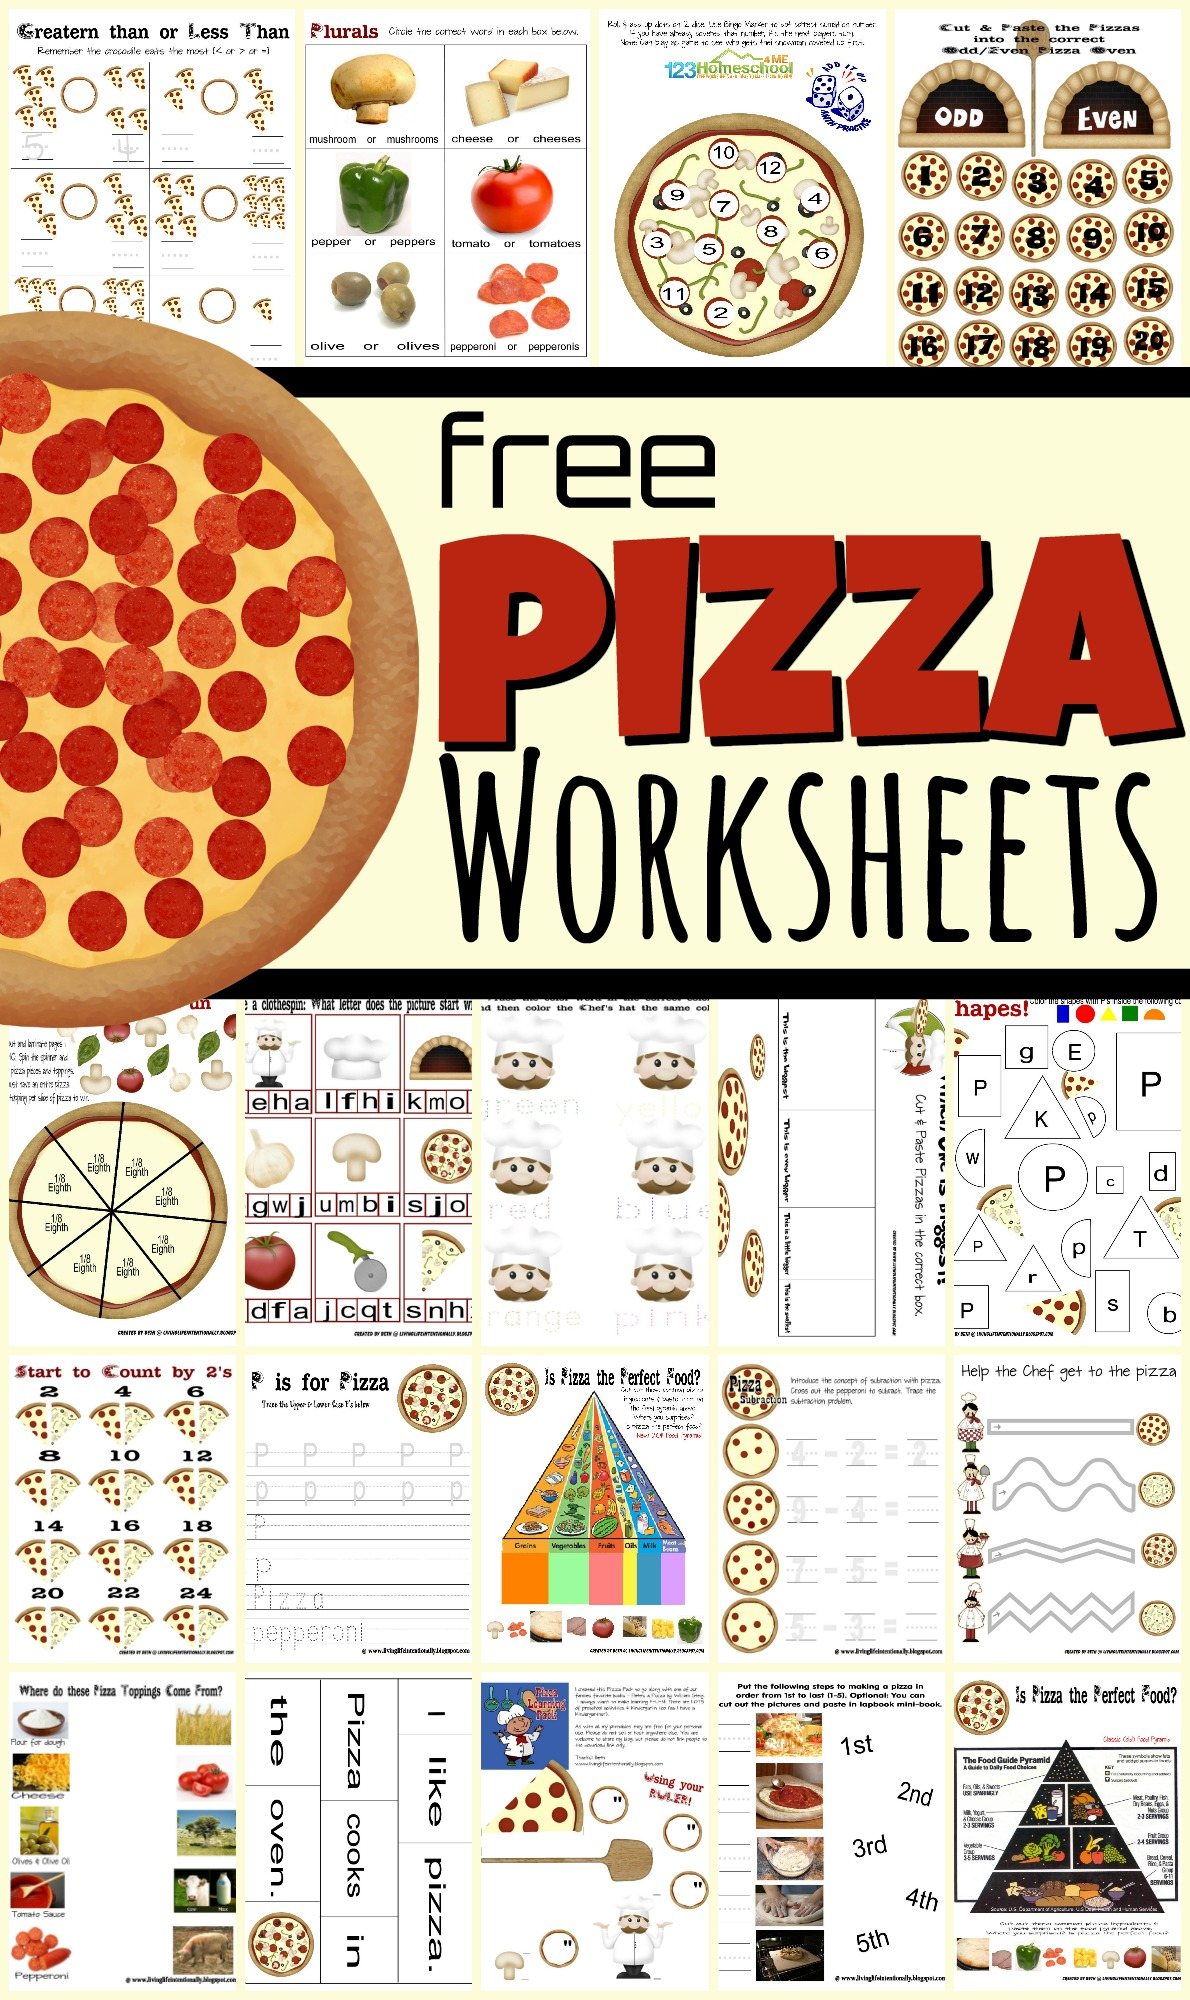 What kid doesn't like Pizza? Make learning fun with these pizza worksheets to help children from toddler, preschool, pre-k, kindergarten, and first grade students. These free printable pizza worksheets are filled with super cute pizza themed printables to practice tracing letters, counting, addition, measuring, colors, sequencing, ordinal words, odd / even, pizza clock, beginning sounds, healthy eating, skip counting, and so much more! Simply download pdf file with pizza worksheets for preschoolers and you are ready for educational activities to learn with a pizza party.